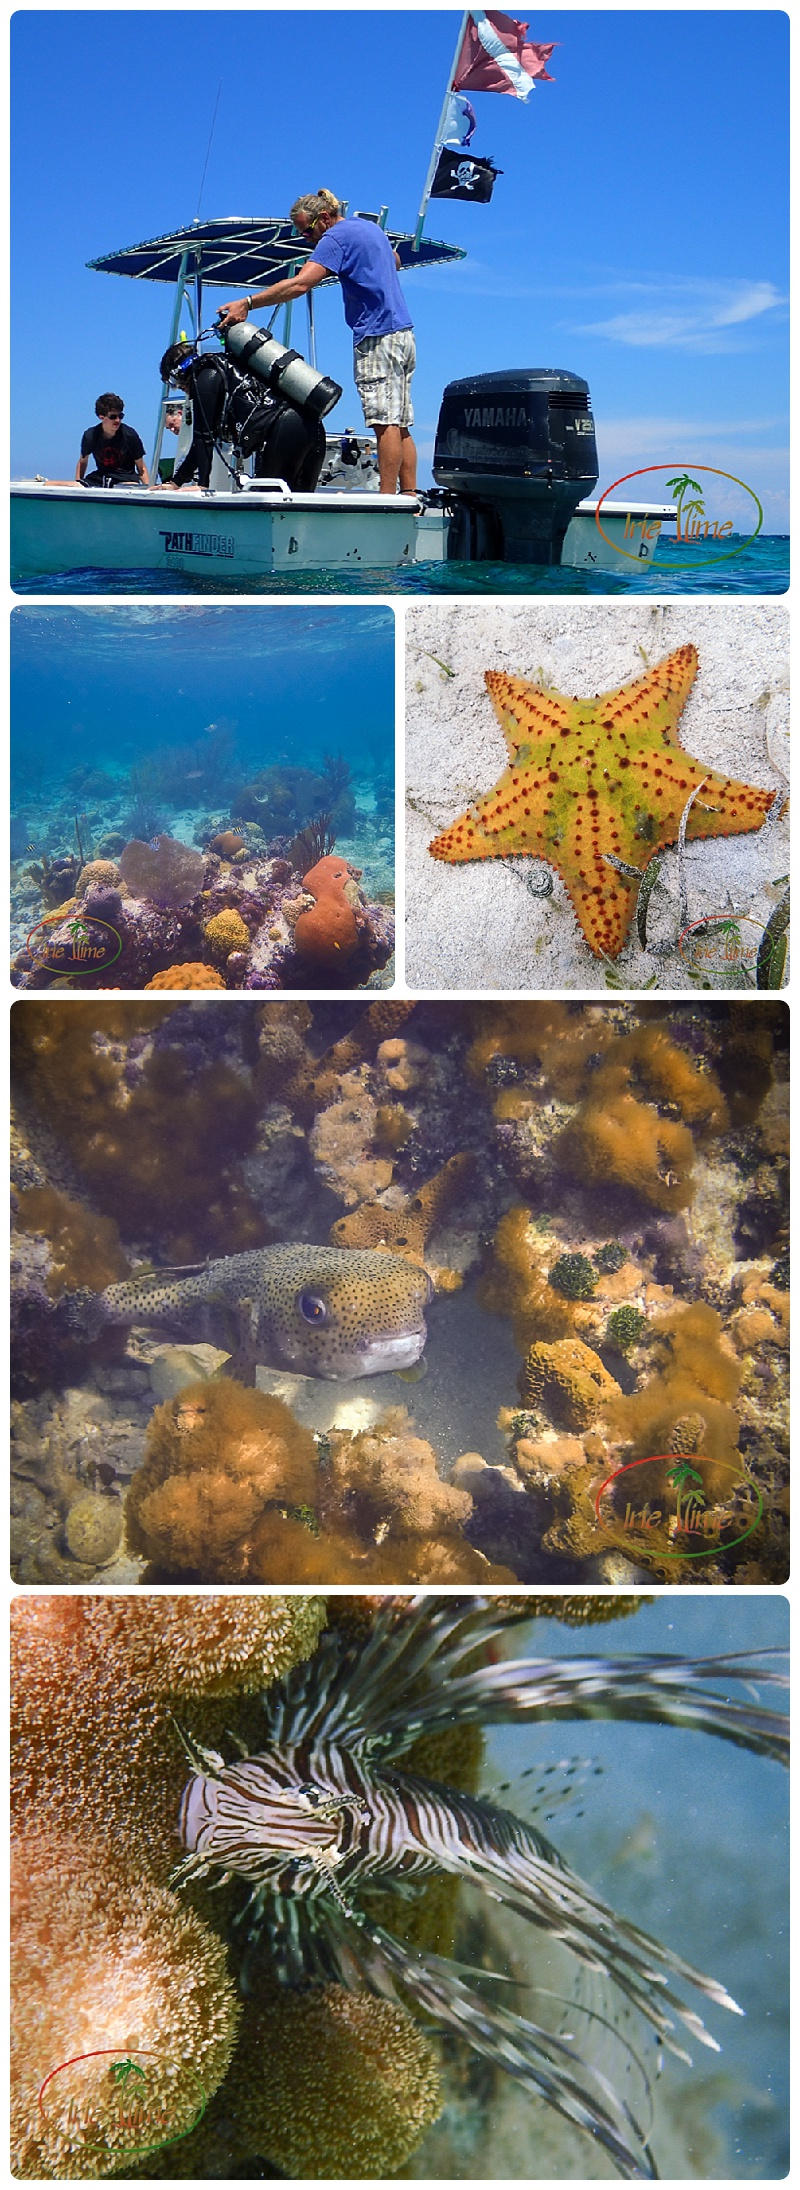 Snorkeling and Diving, Kamalame Cay, Andros Bahamas #bahamas #kamalamecay #iheartkamalame #honeymoon